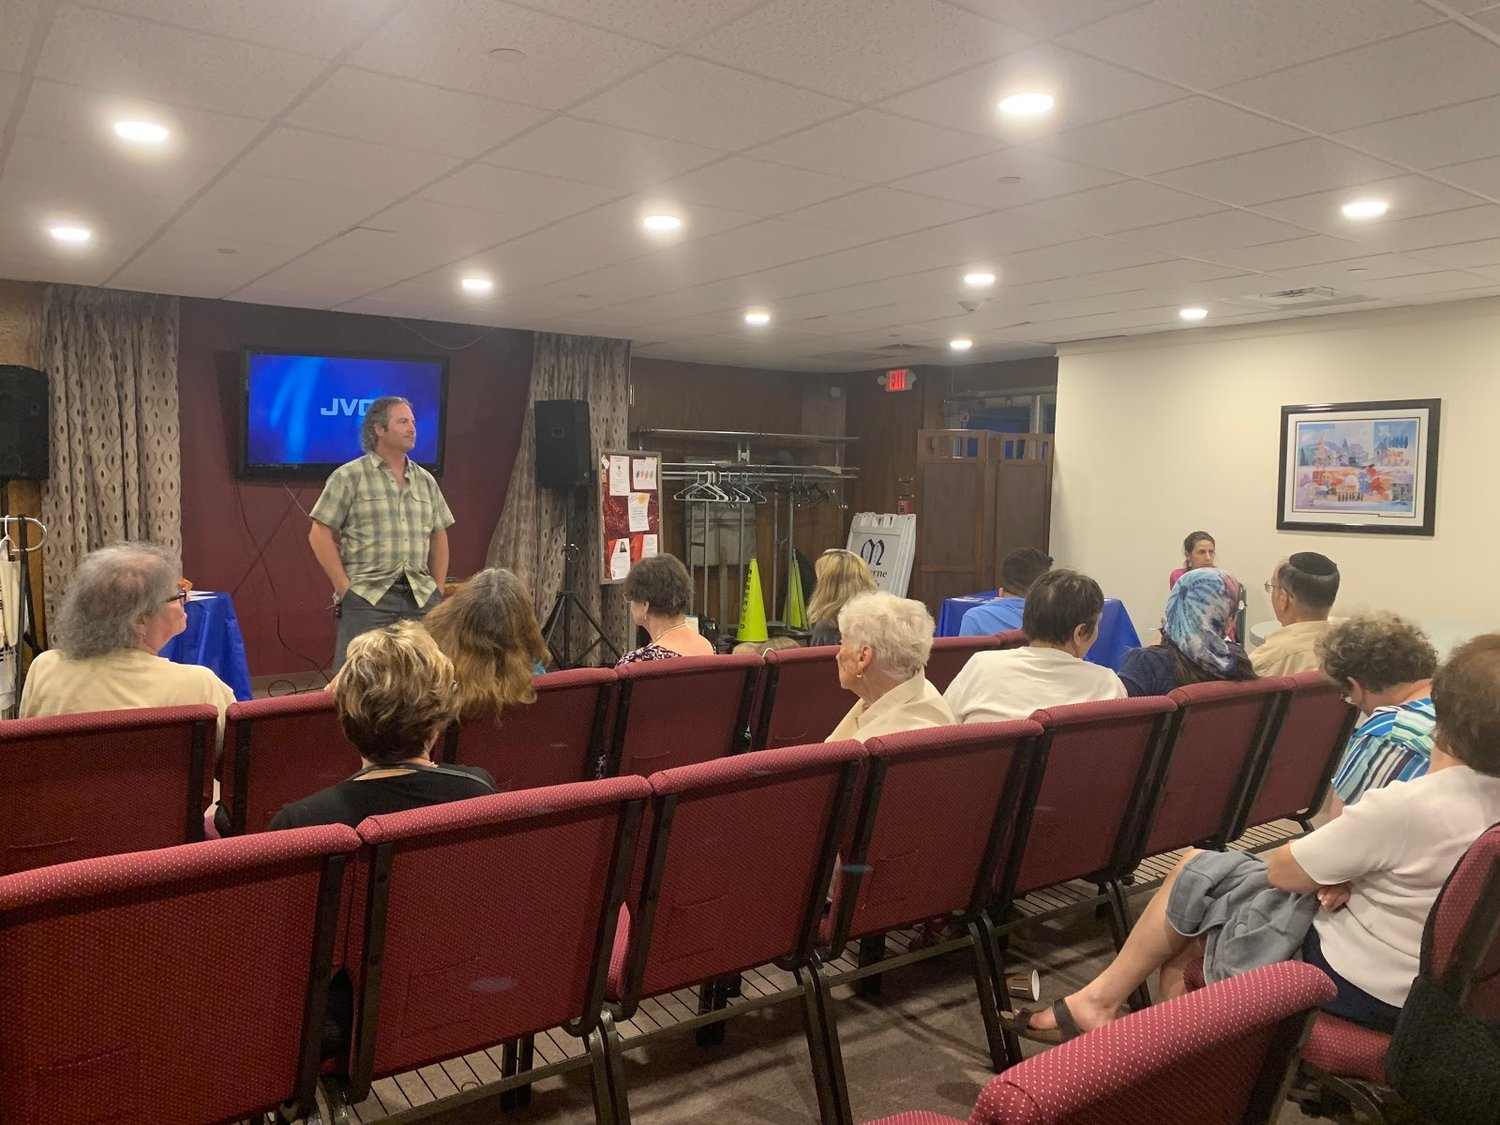 George Povall, executive director of All Our Energy, led a discussion on the adverse effects on plastic pollution at the Malverne Jewish Center on July 9.